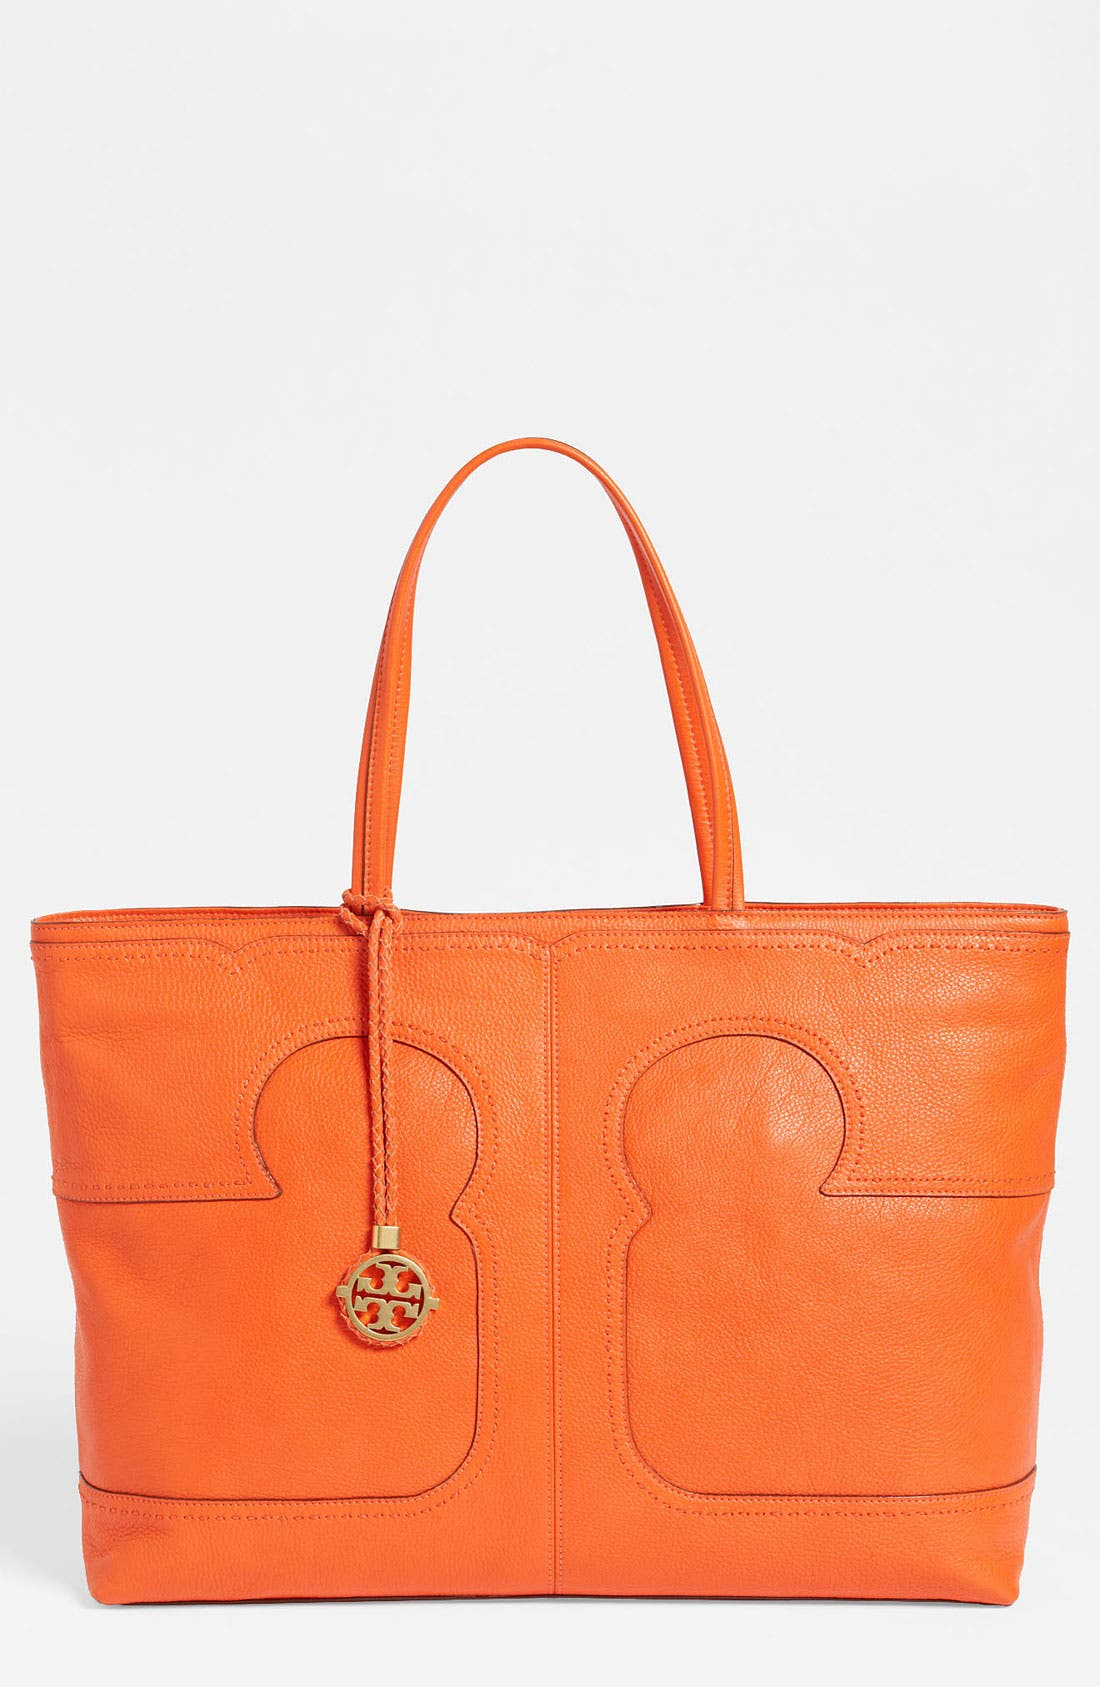 Alternate Image 1 Selected - Tory Burch 'Amalie' Leather Tote